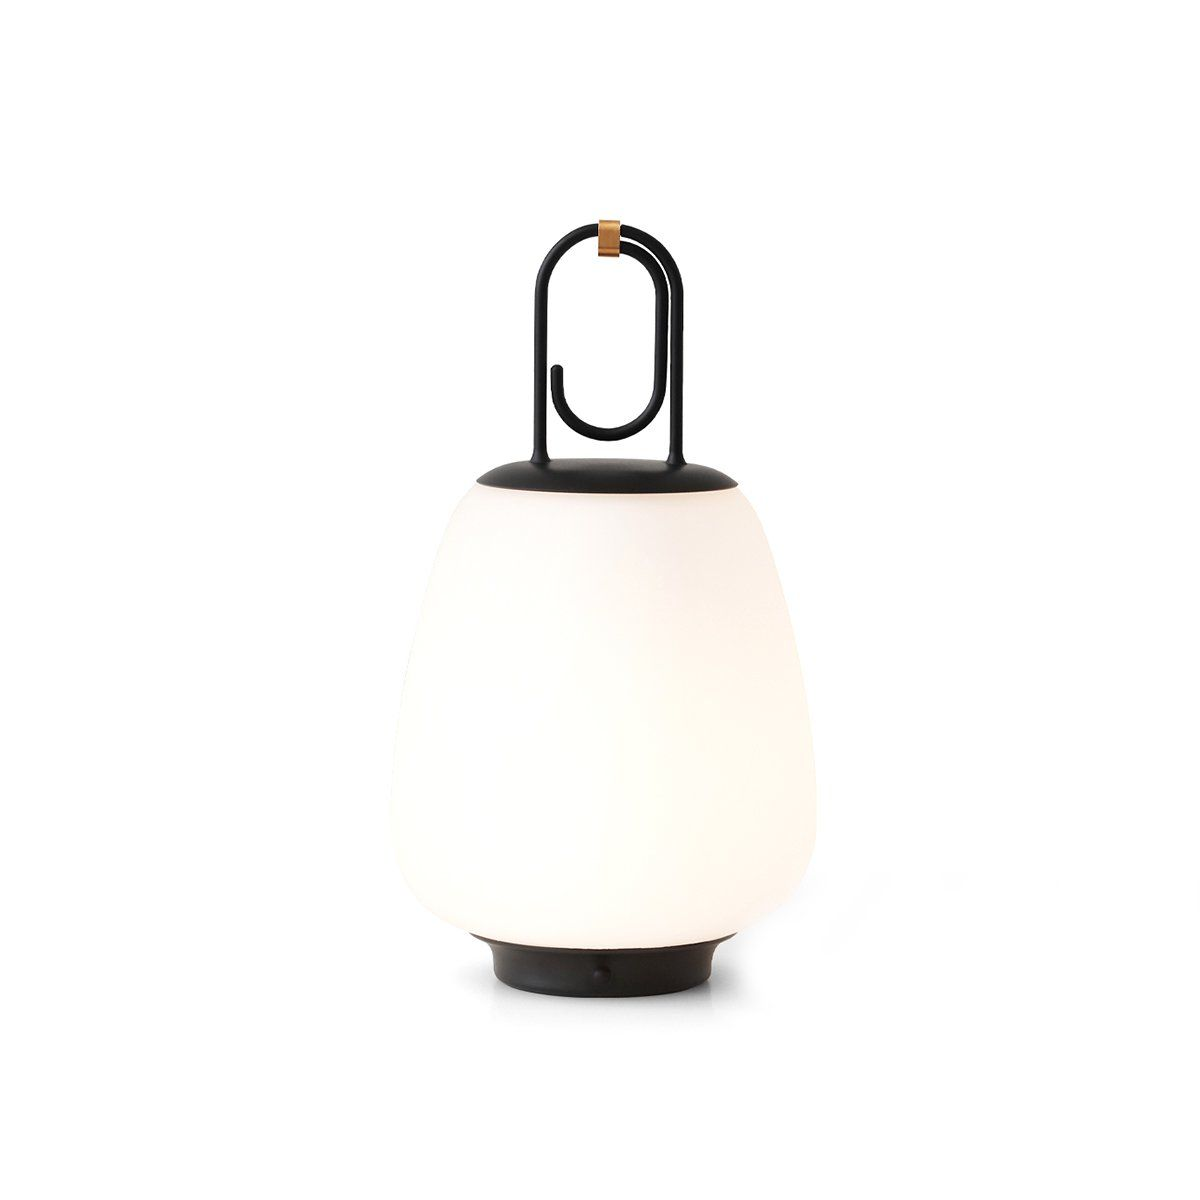 Lucca Sc51 Table Lamp Buy Tradition Online At A R In 2020 Lamp Table Lamp Portable Lamps